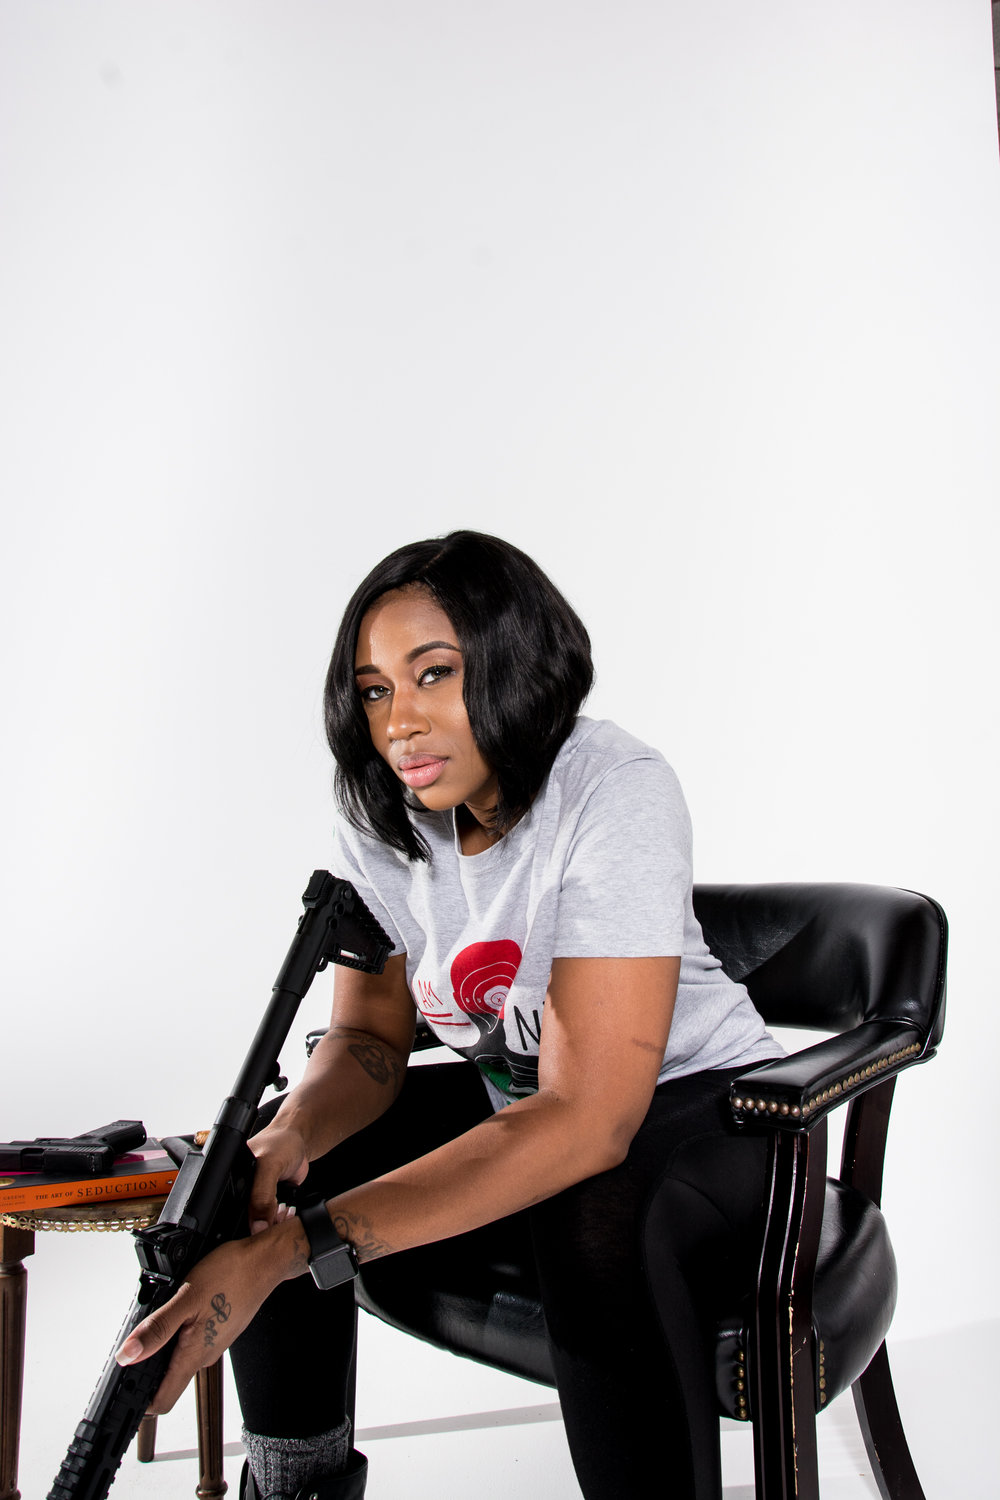 National African American Gun Association, Marchelle Tigner, 2nd Amendment Rights, Gun Rights, Gun Safety, KOLUMN Magazine, KOLUMN